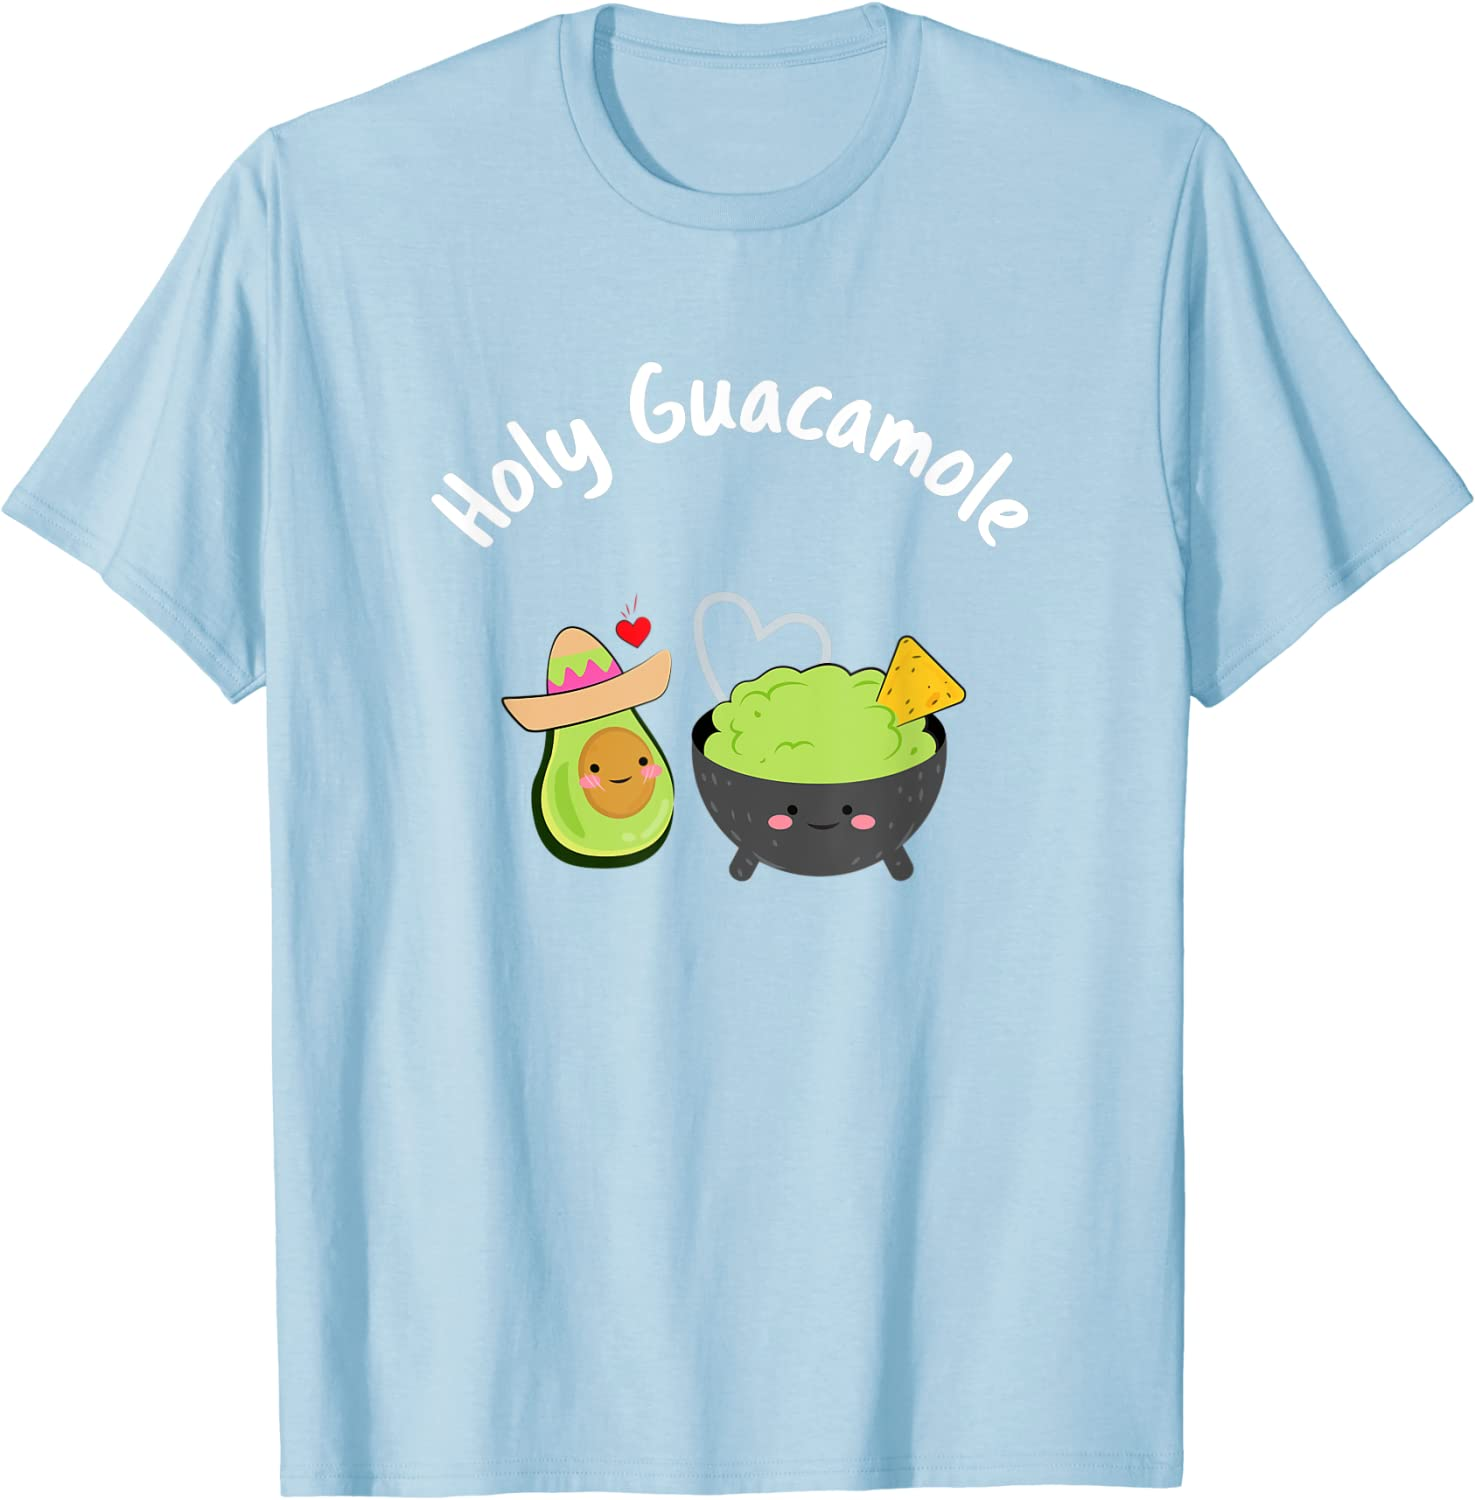 Holy Guacamole T-Shirt-Funny Humorous Novelty Shirt from That Funny Shirt